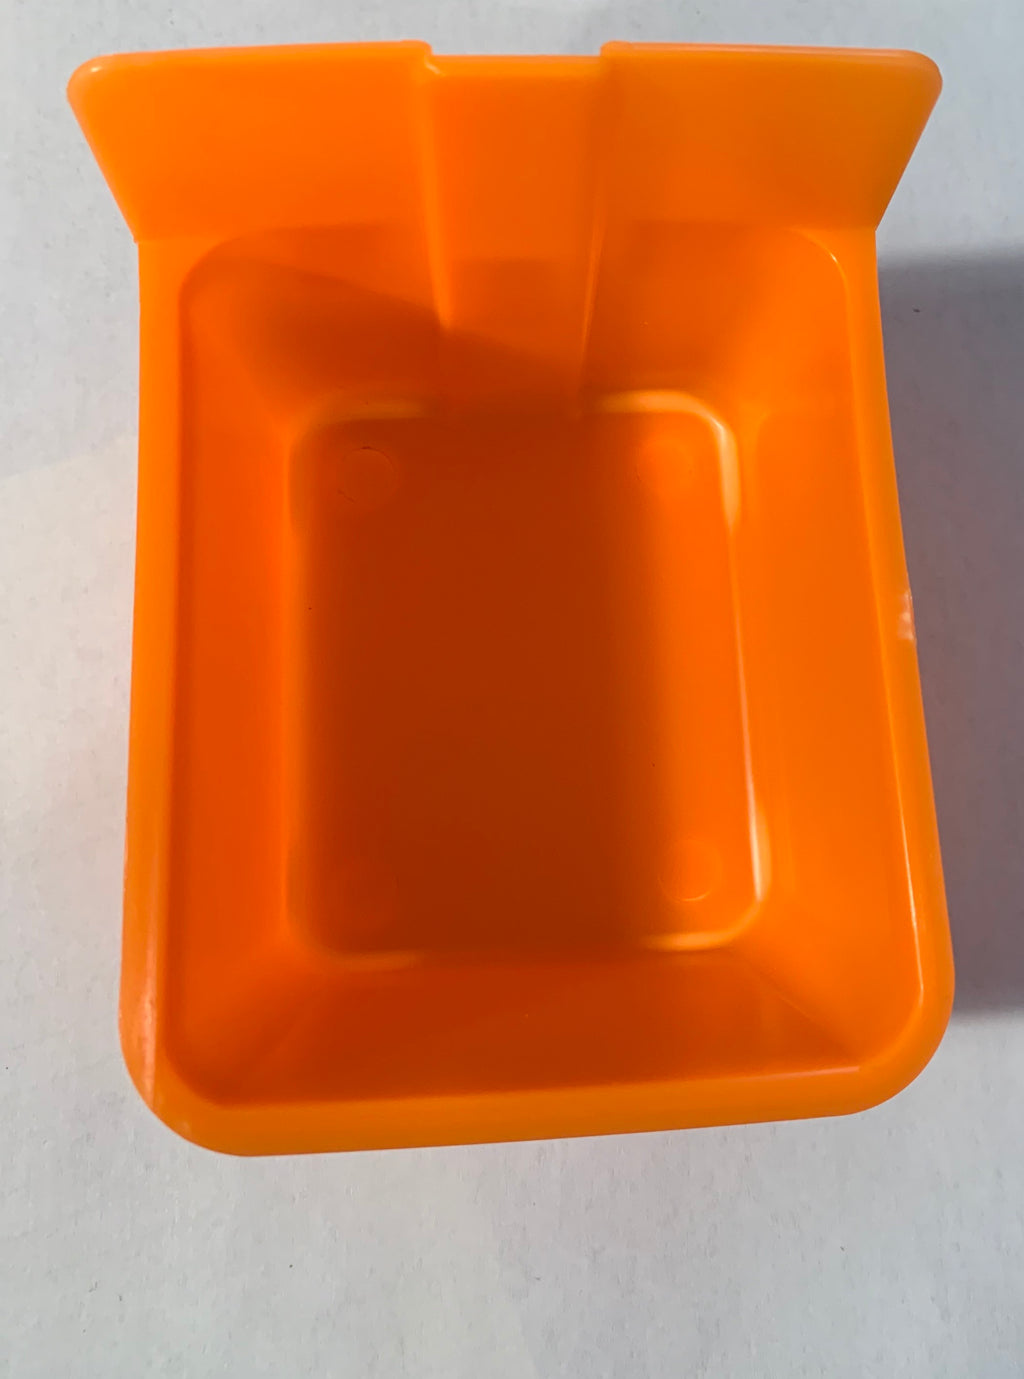 Coop Cup-Easy Snap Square Orange